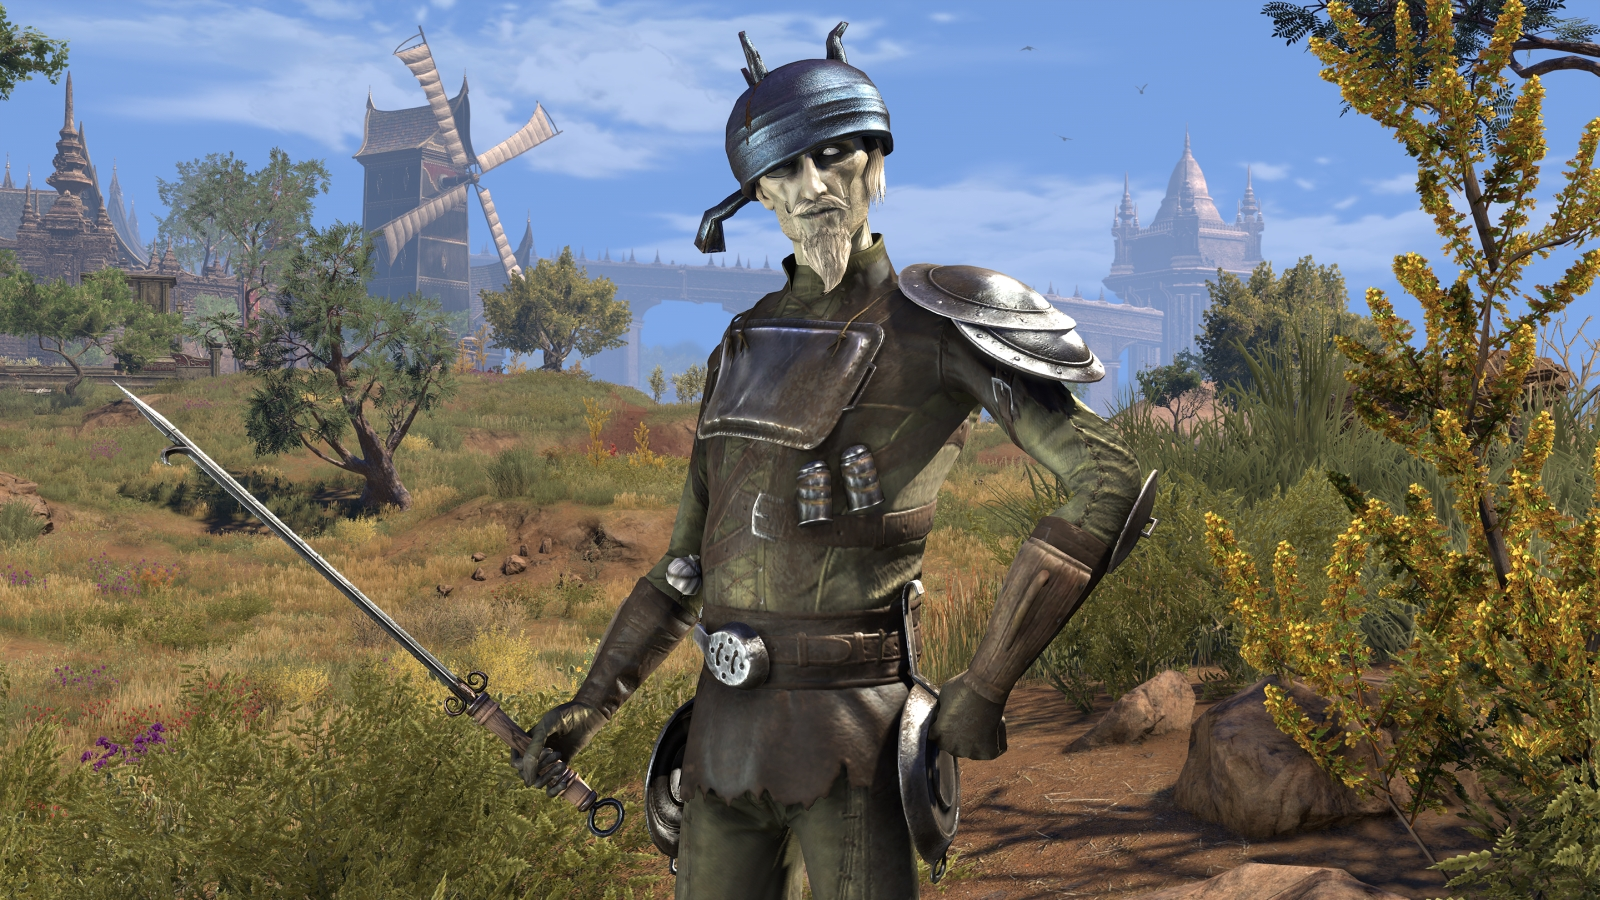 ESO_Elsweyr_MeettheCharacter_Cadwell_CleeseVideo_1560085857